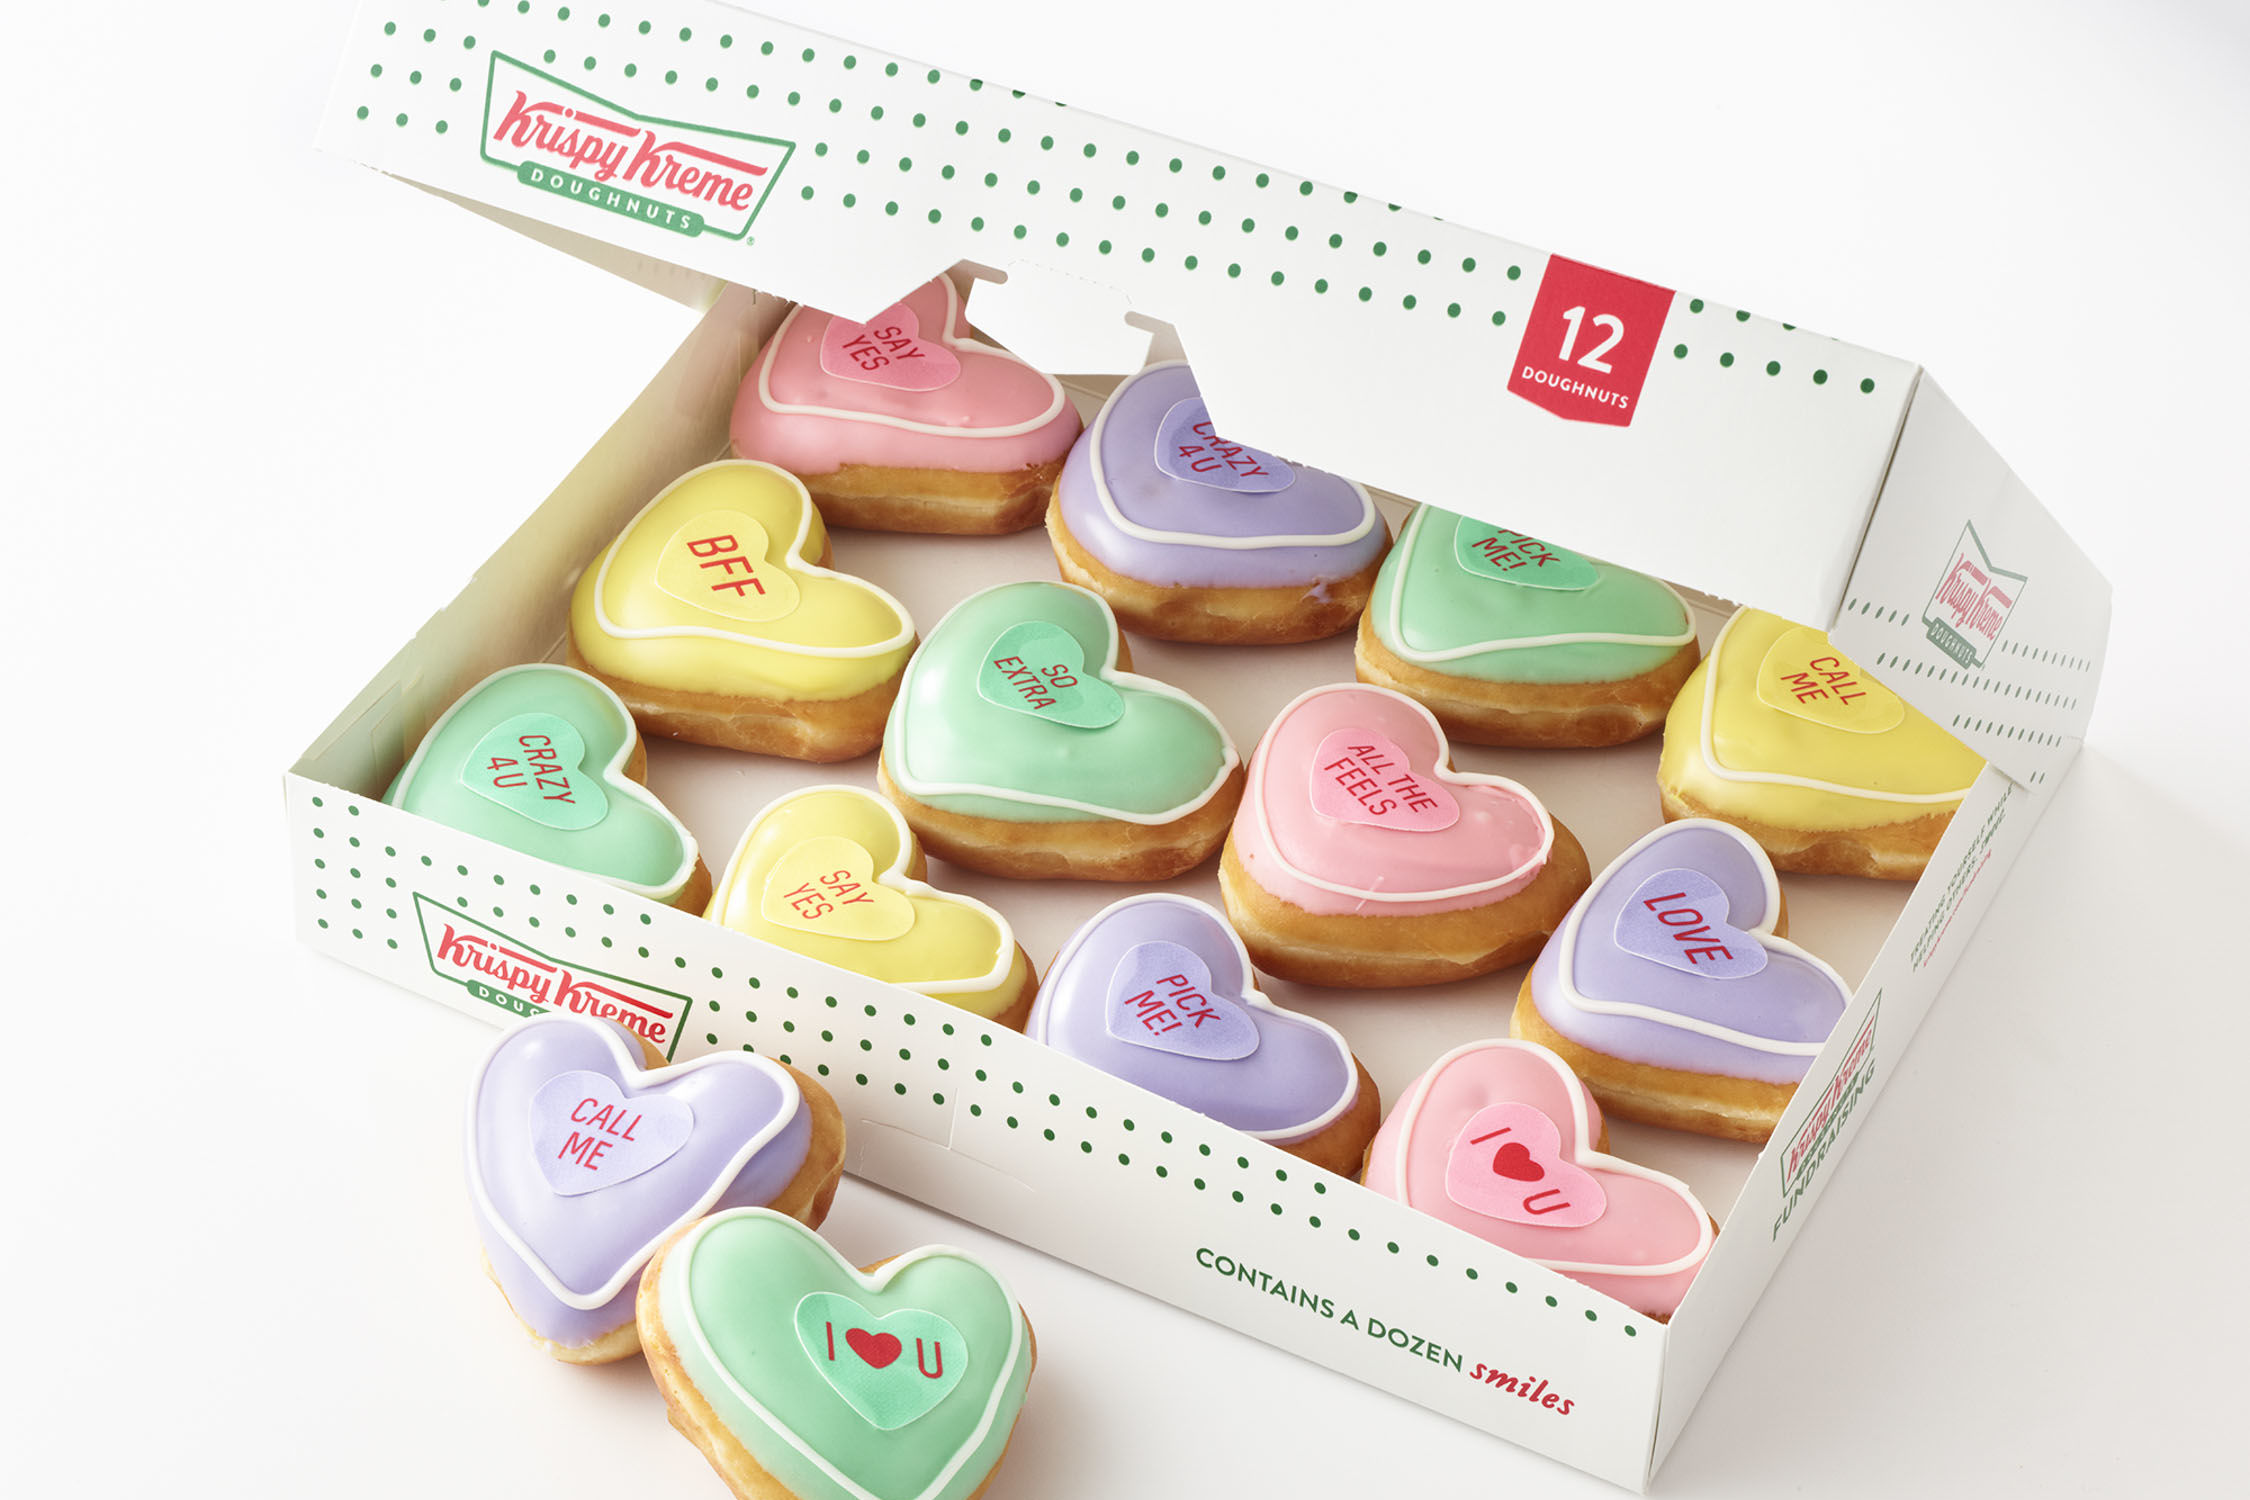 Krispy Kreme Debuts Conversation Heart Donuts Just in Time for Valentine's Day